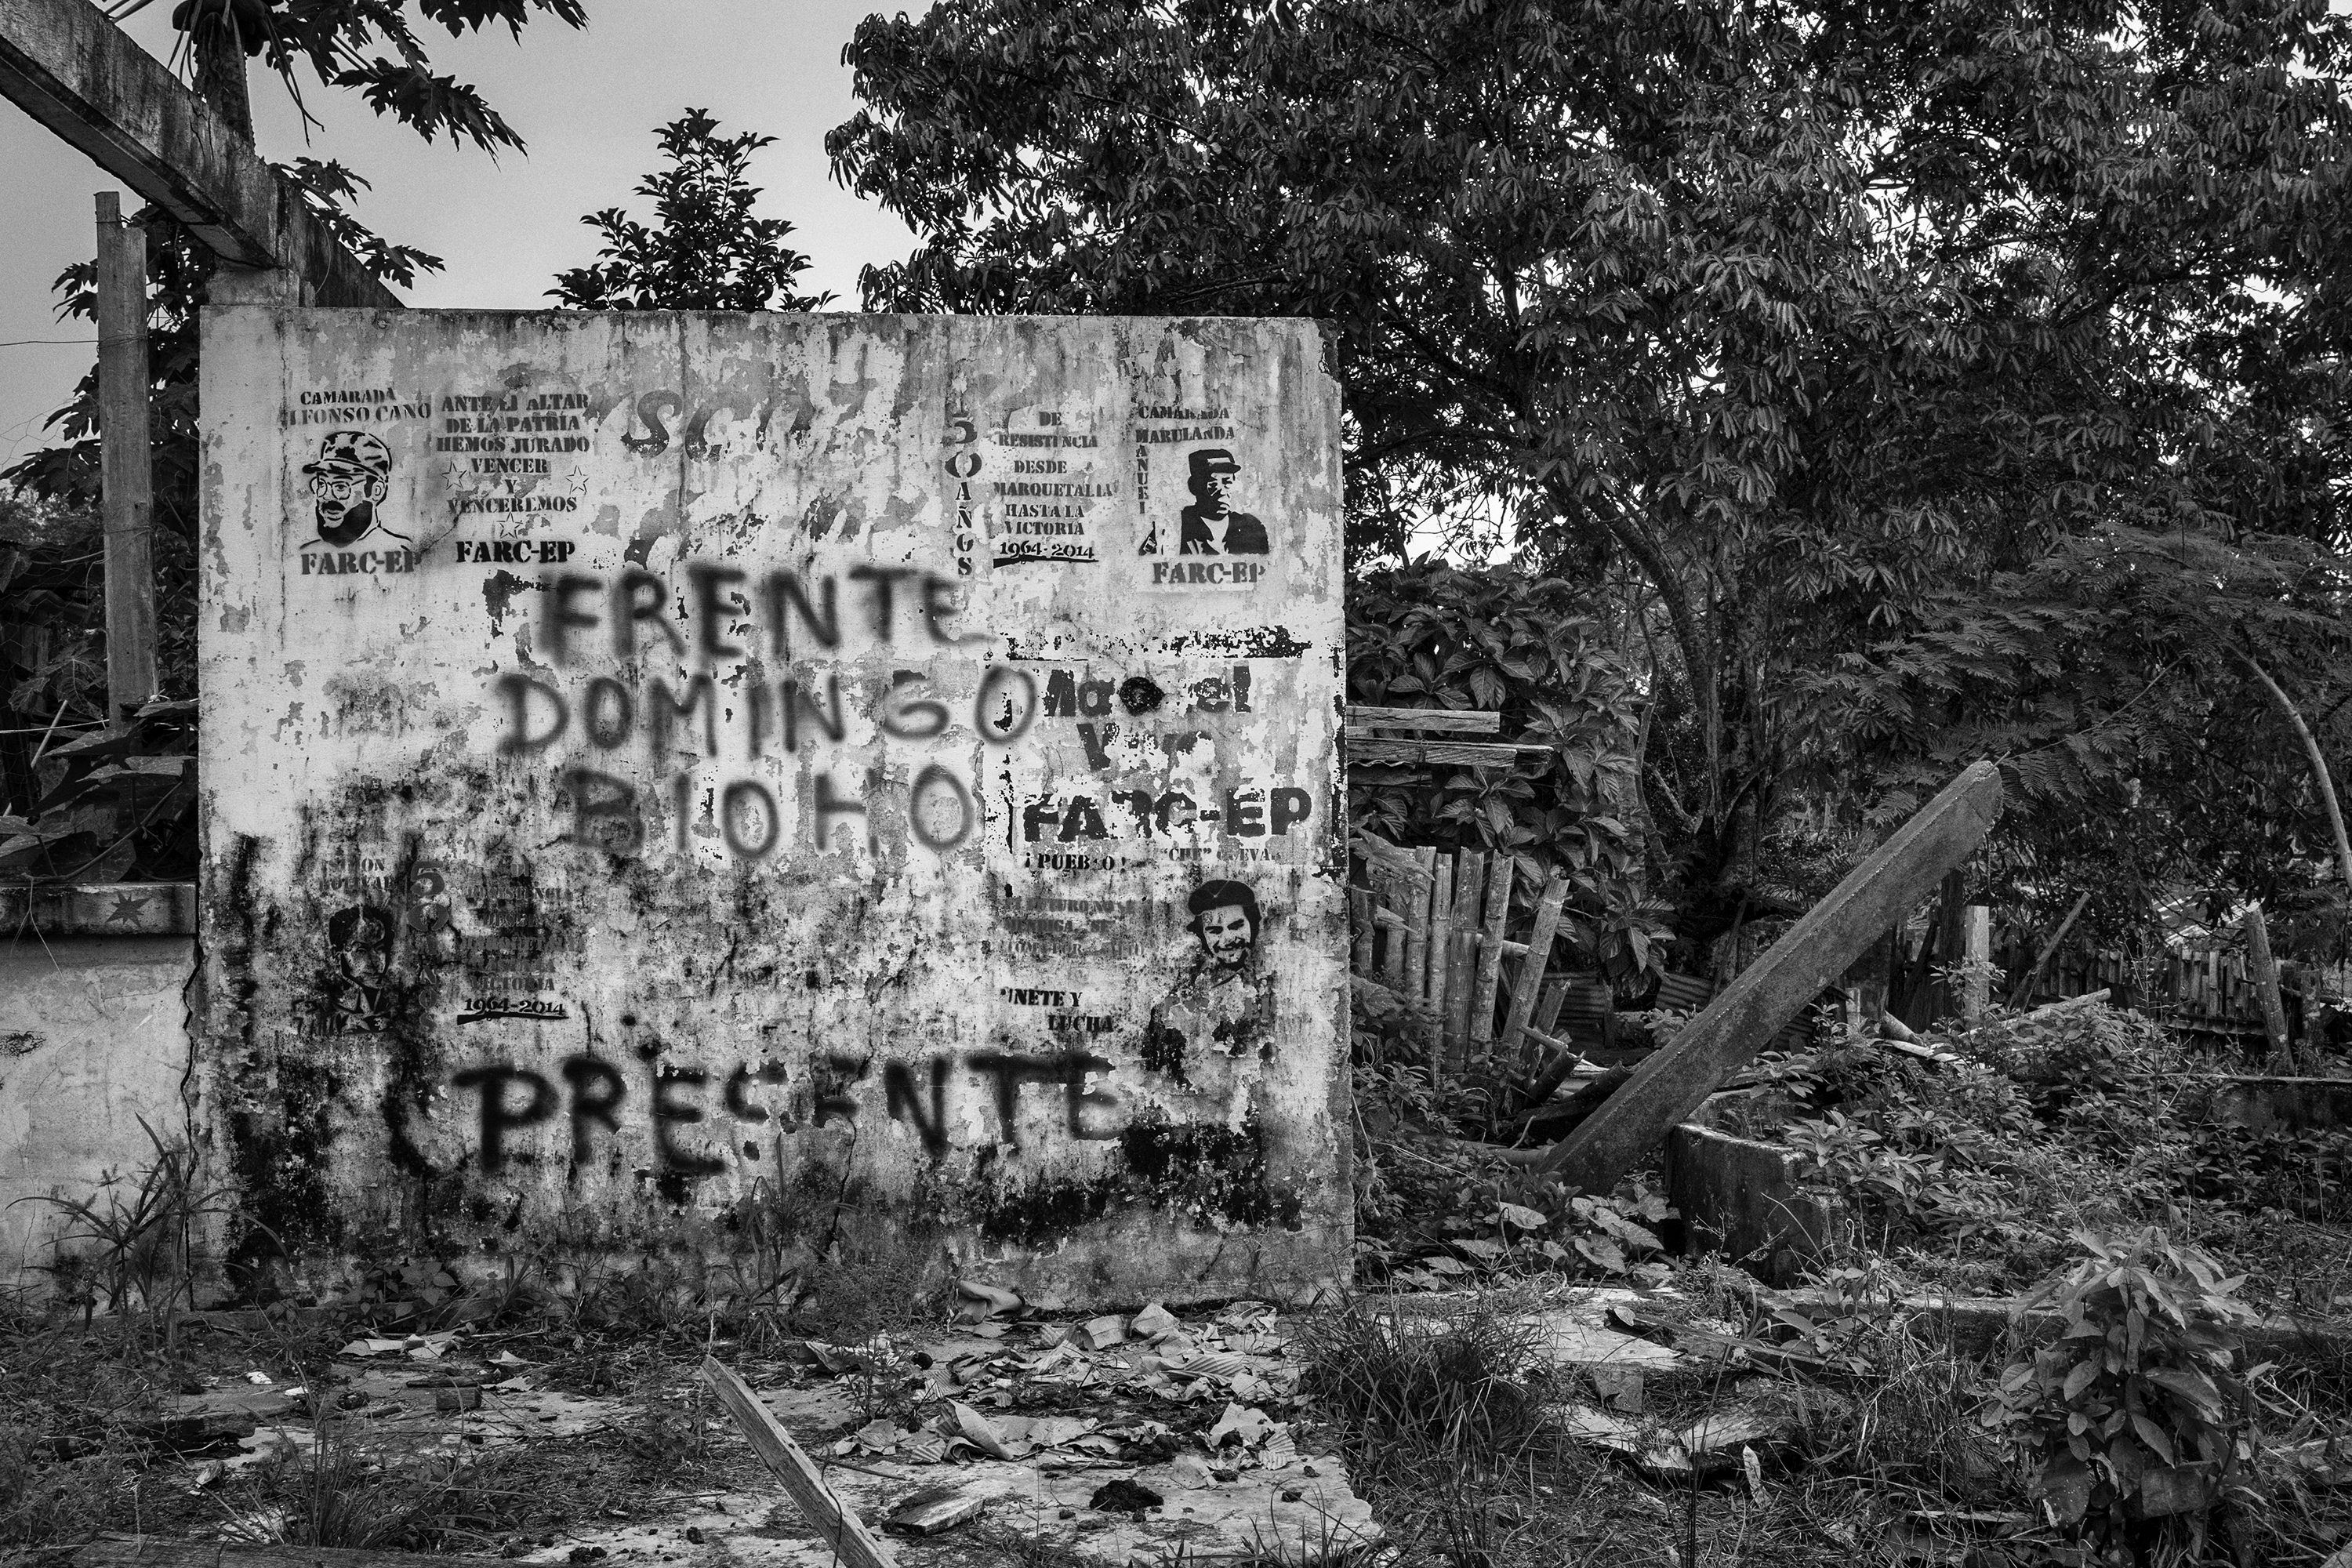 A wall destroyed by the conflict in the community of Santo Domingo del Caguan shows propaganda from FARC, Caqueta, Colombia, April 2016.